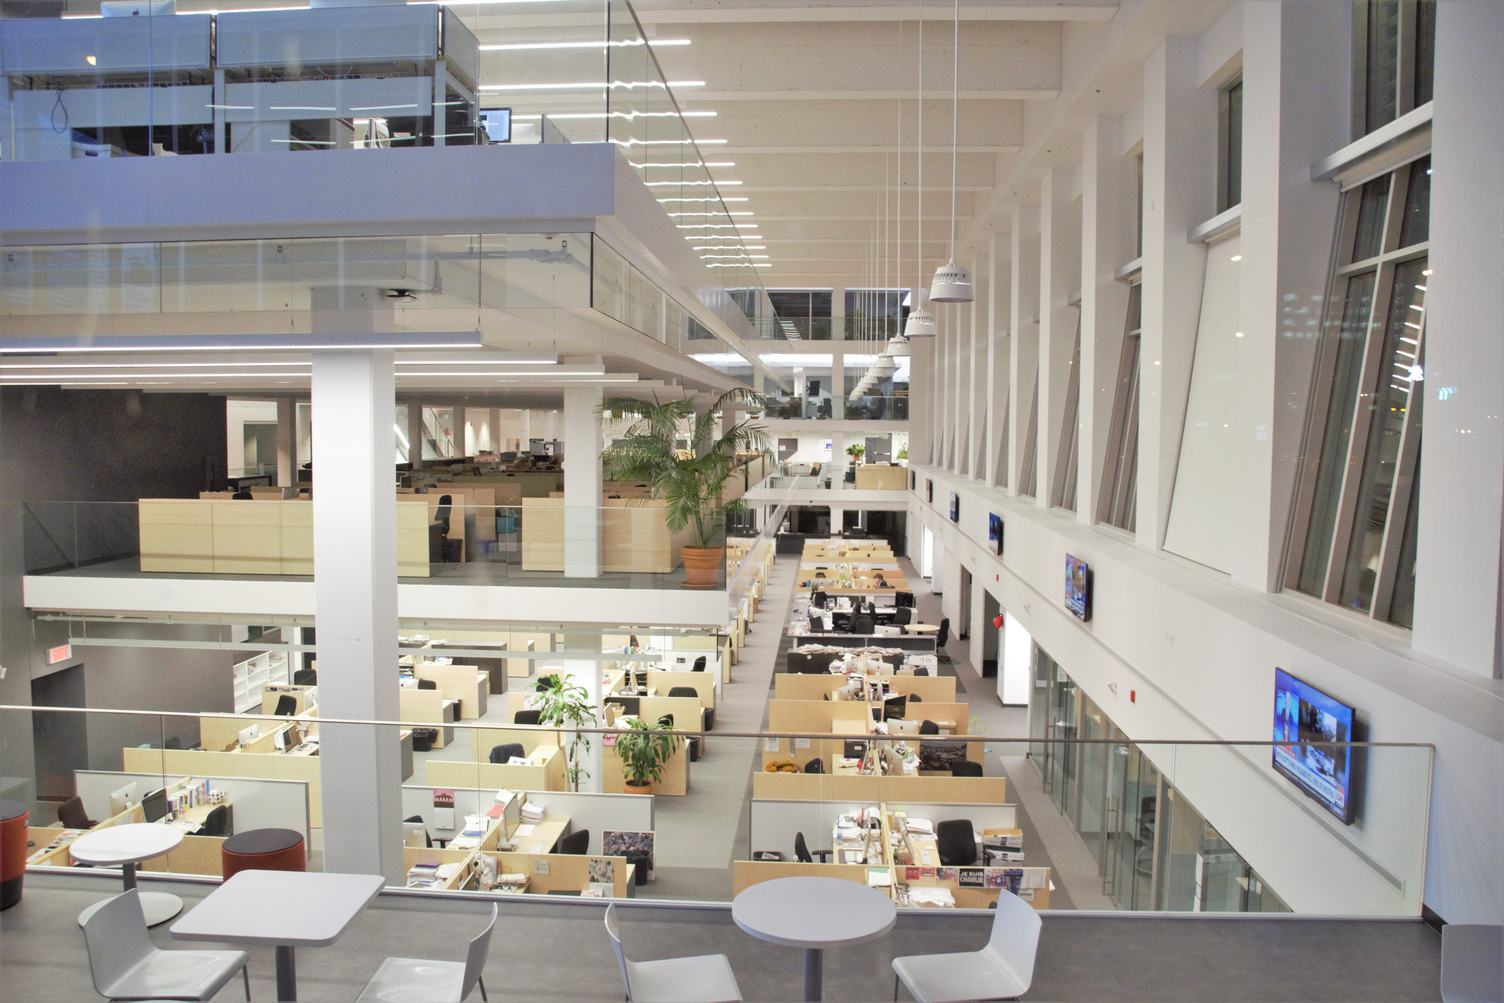 The Interior of a Large Open Space Office